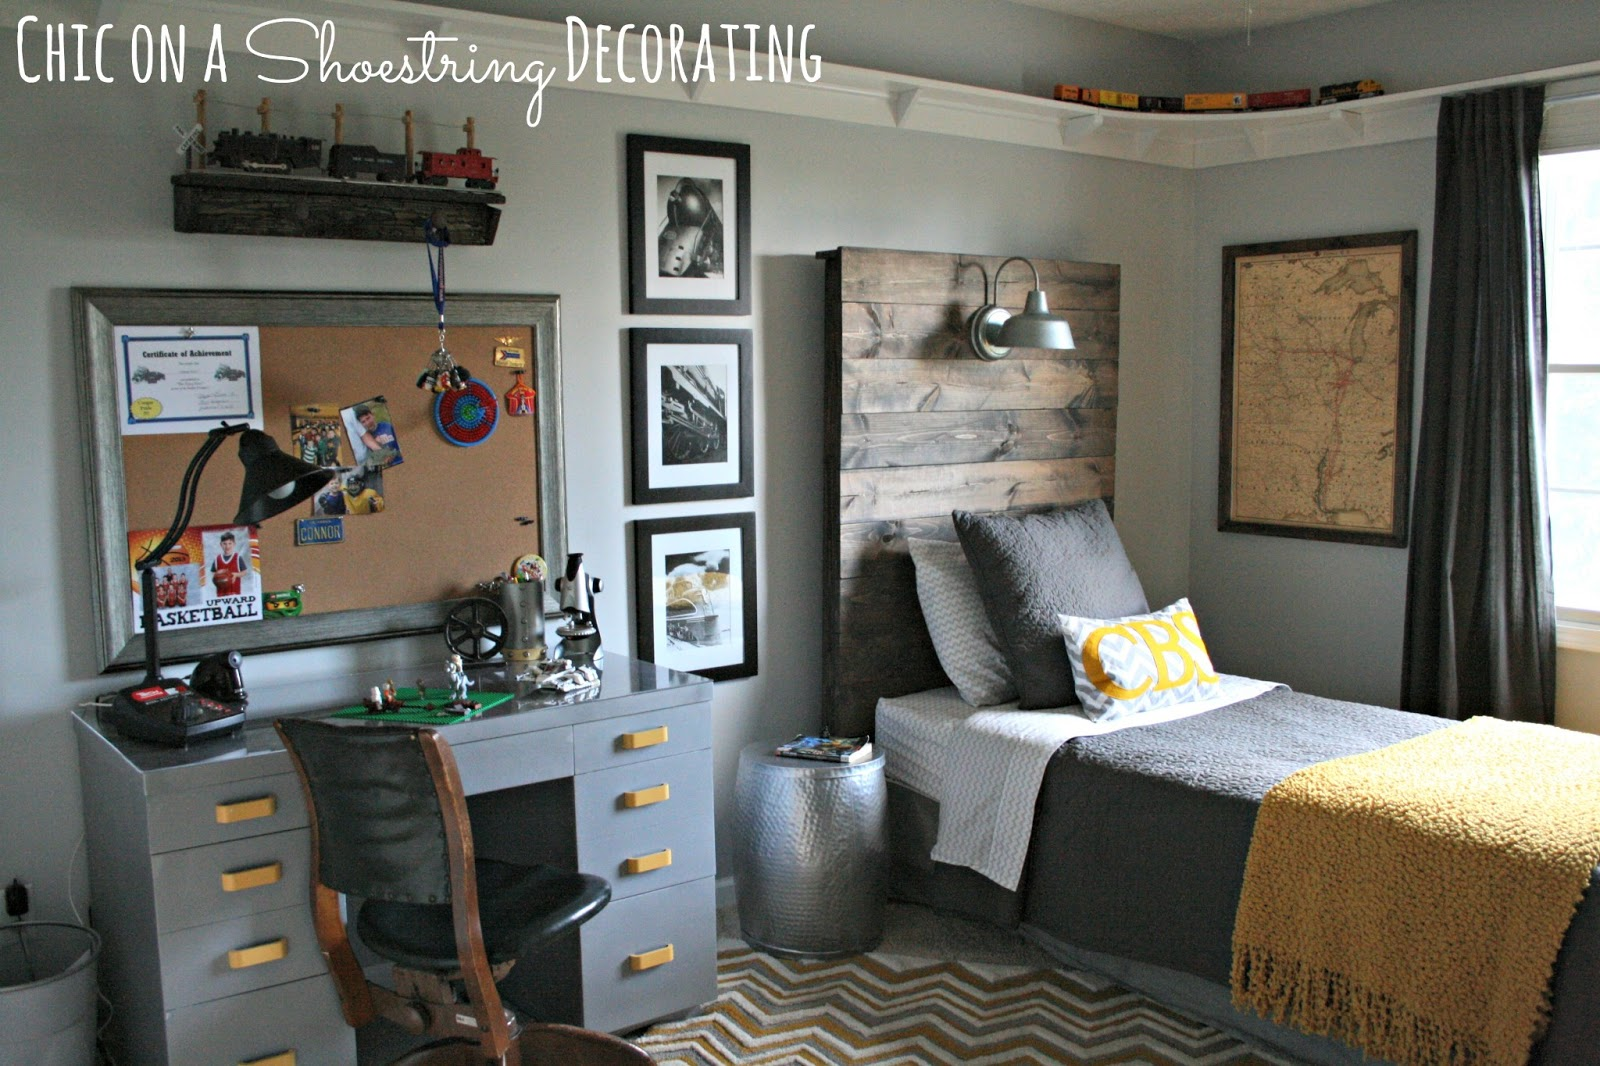 Chic on a Shoestring Decorating: Bigger Boy Room Reveal